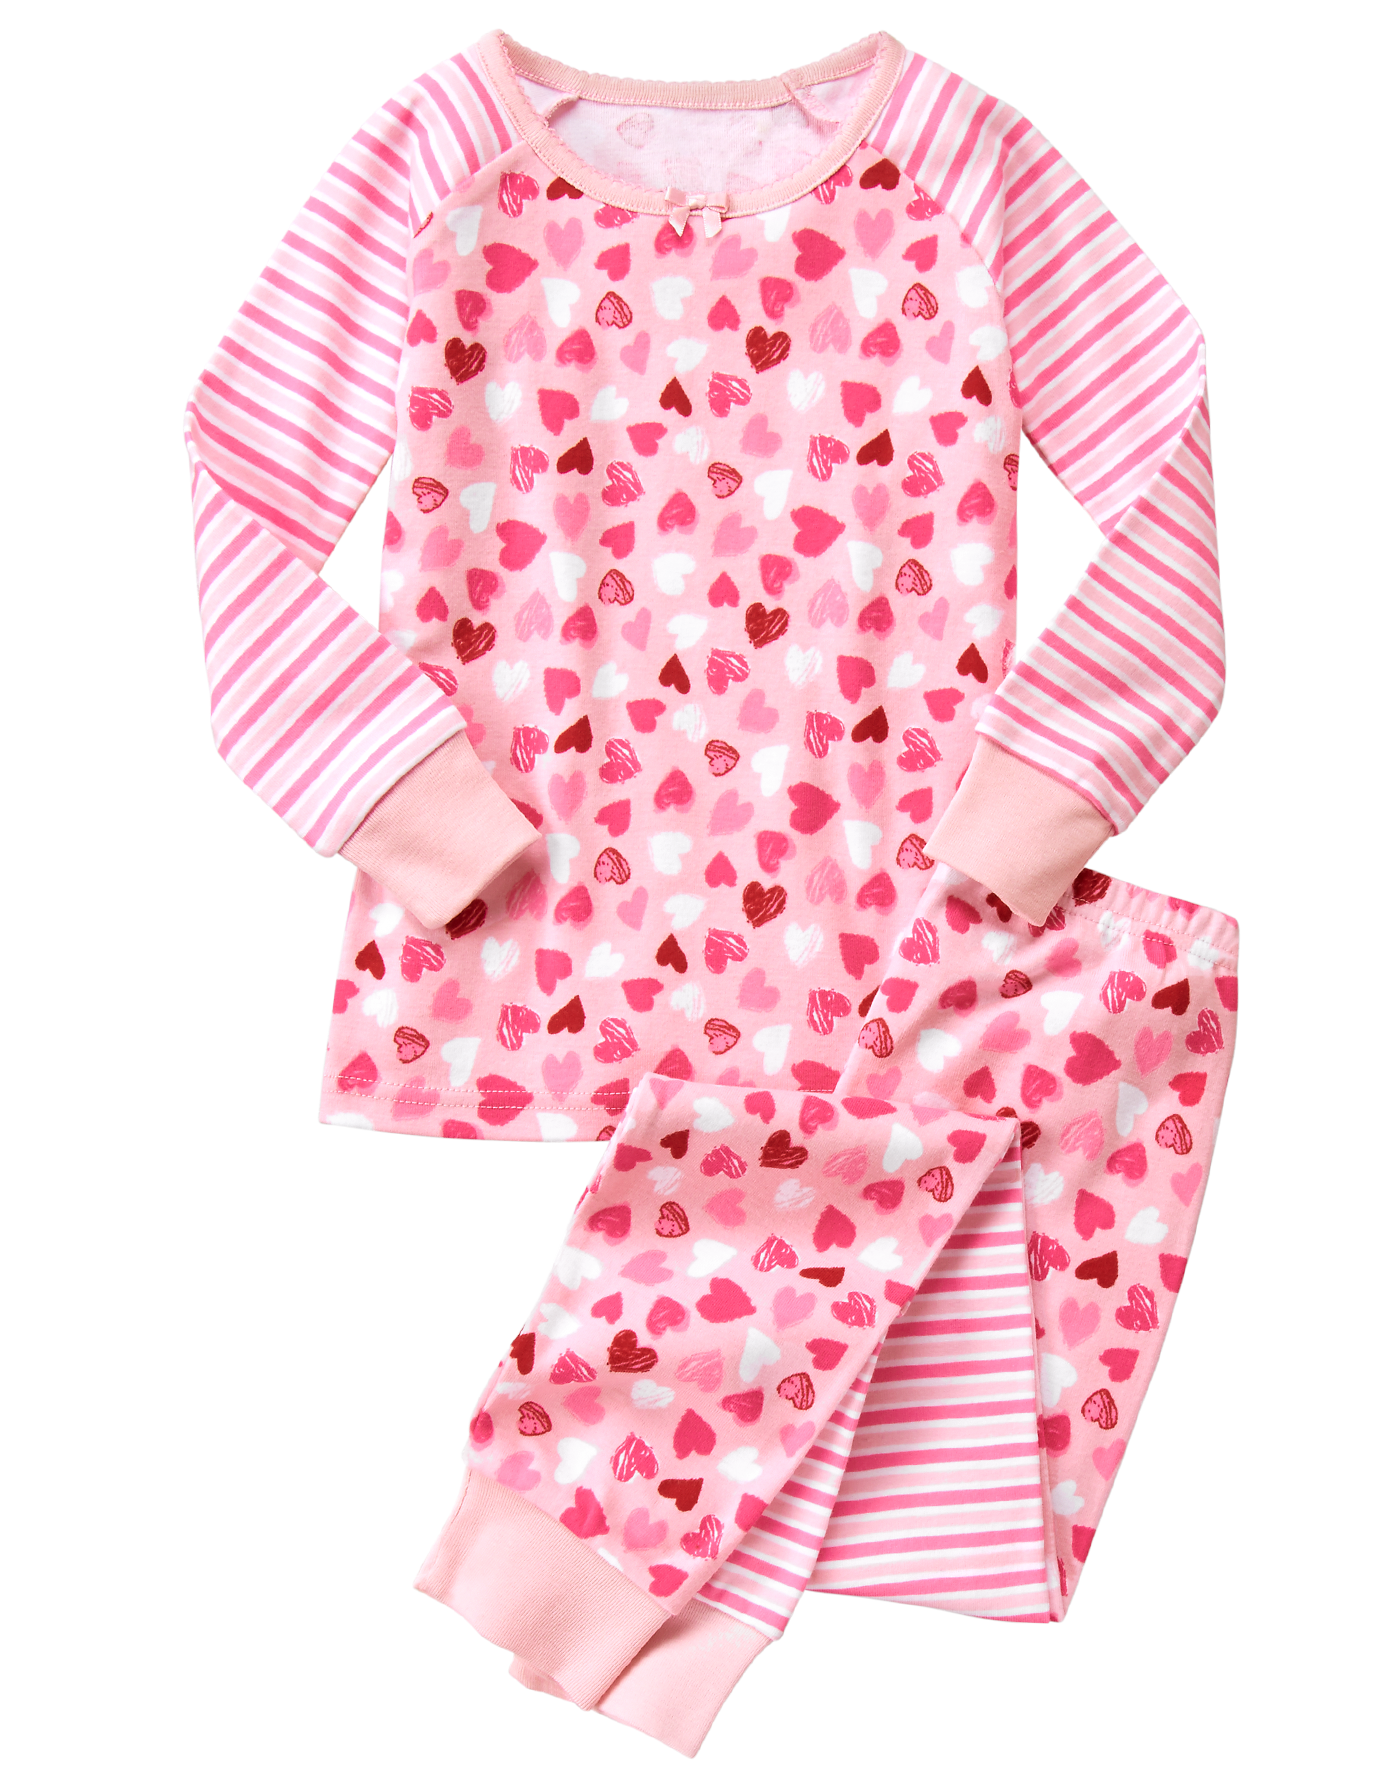 Pajamas clipart comfy clothes. Heart piece gymboree pyjamas